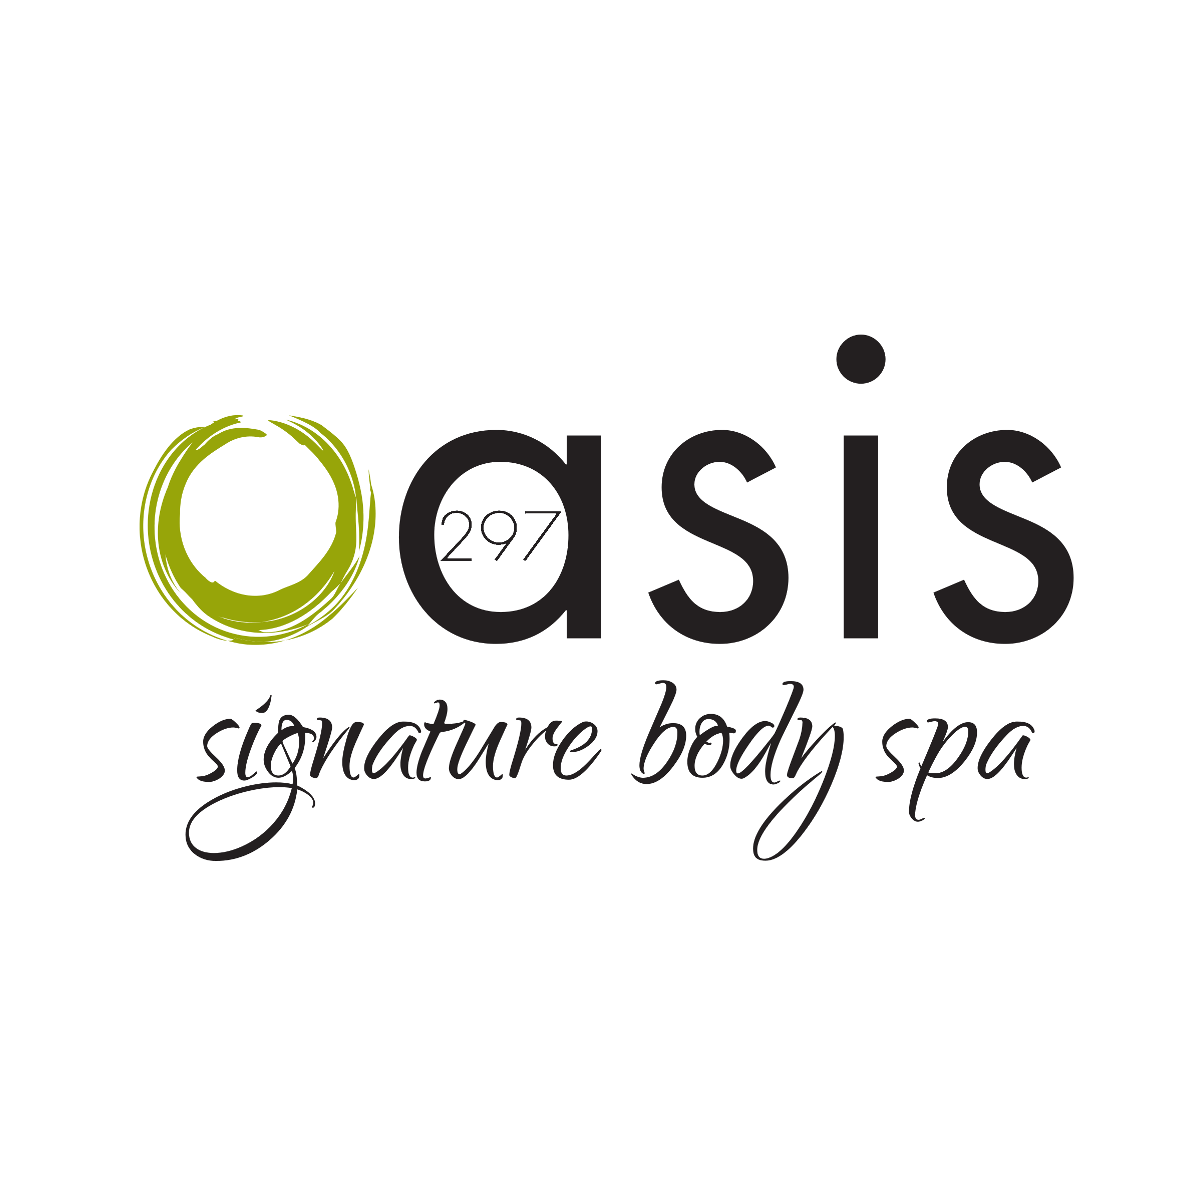 Permalink to:Oasis Signature Body Spa